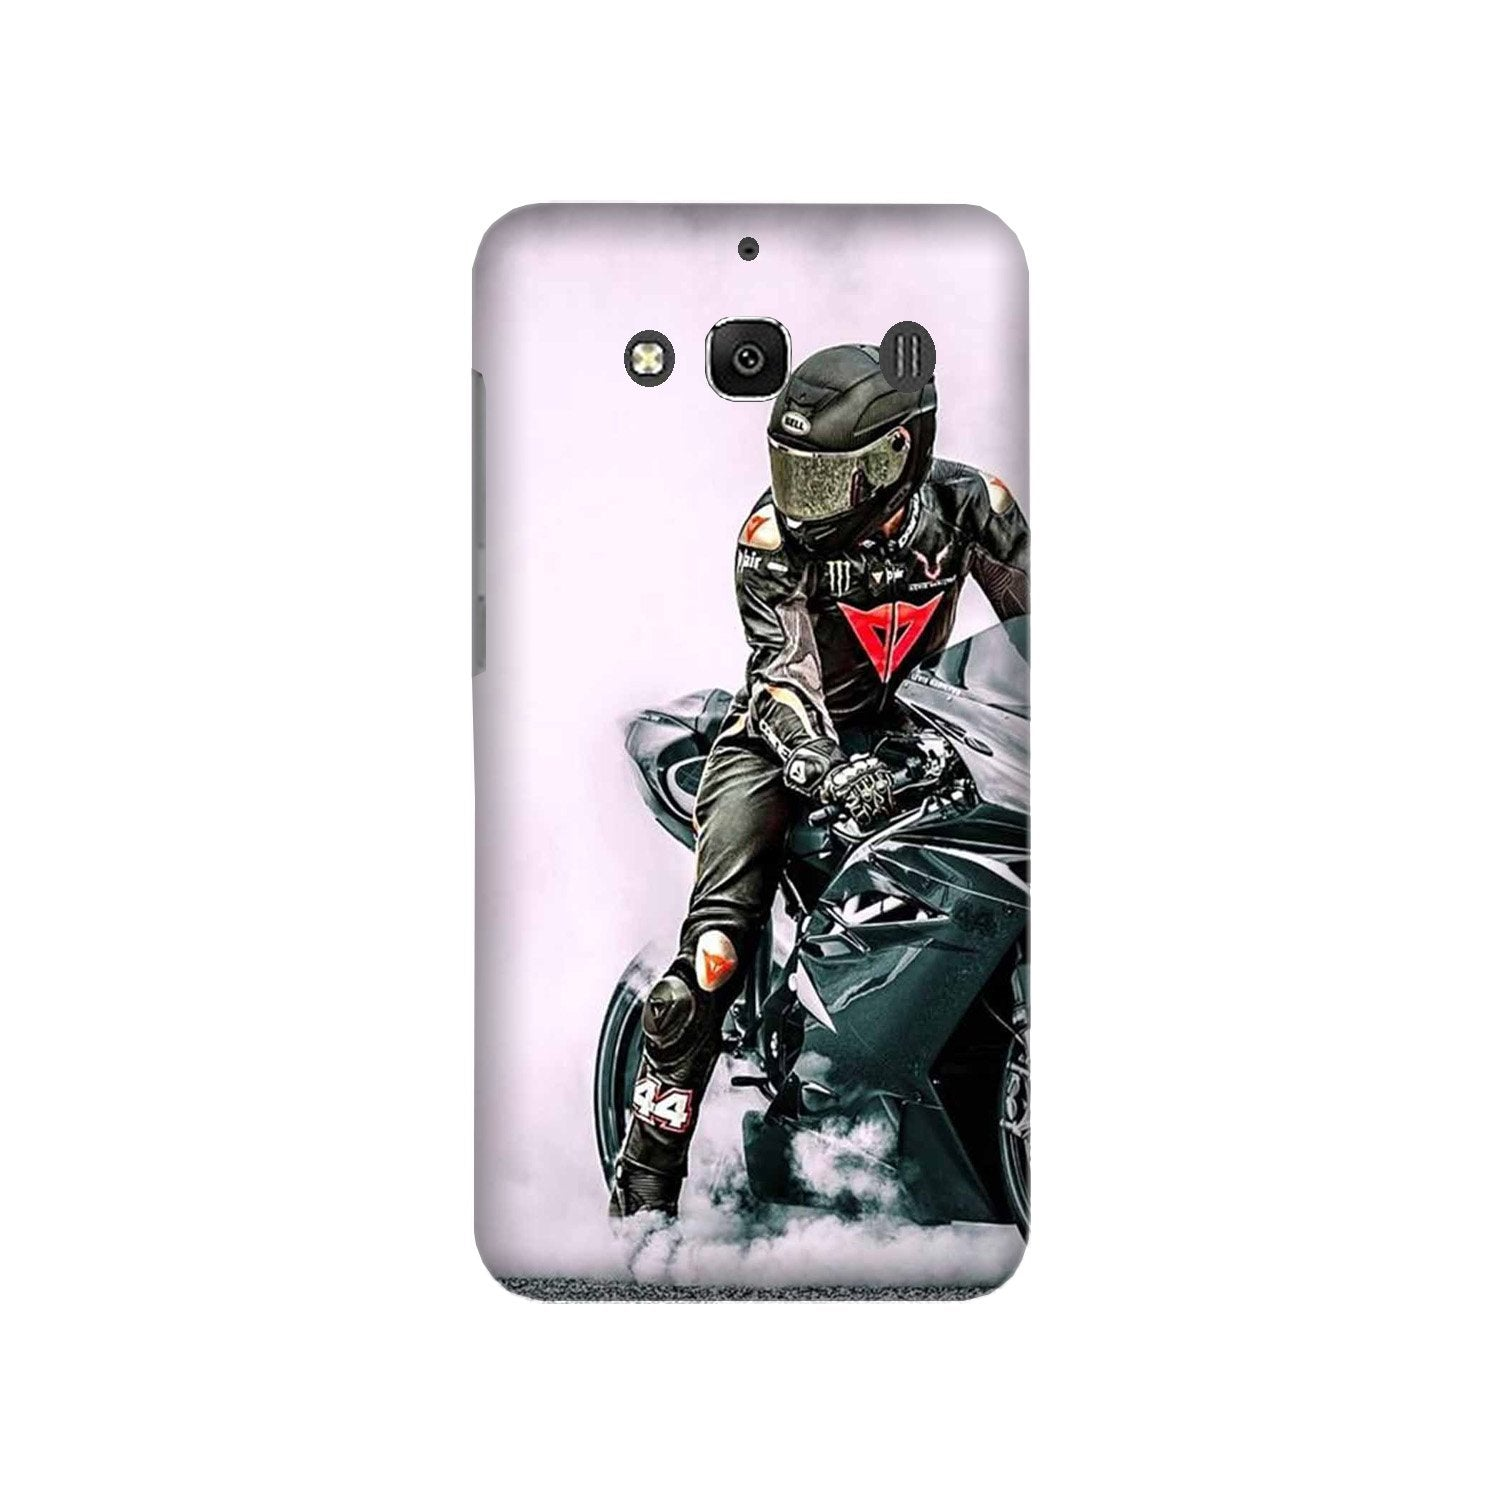 Biker Mobile Back Case for Redmi 2 Prime  (Design - 383)